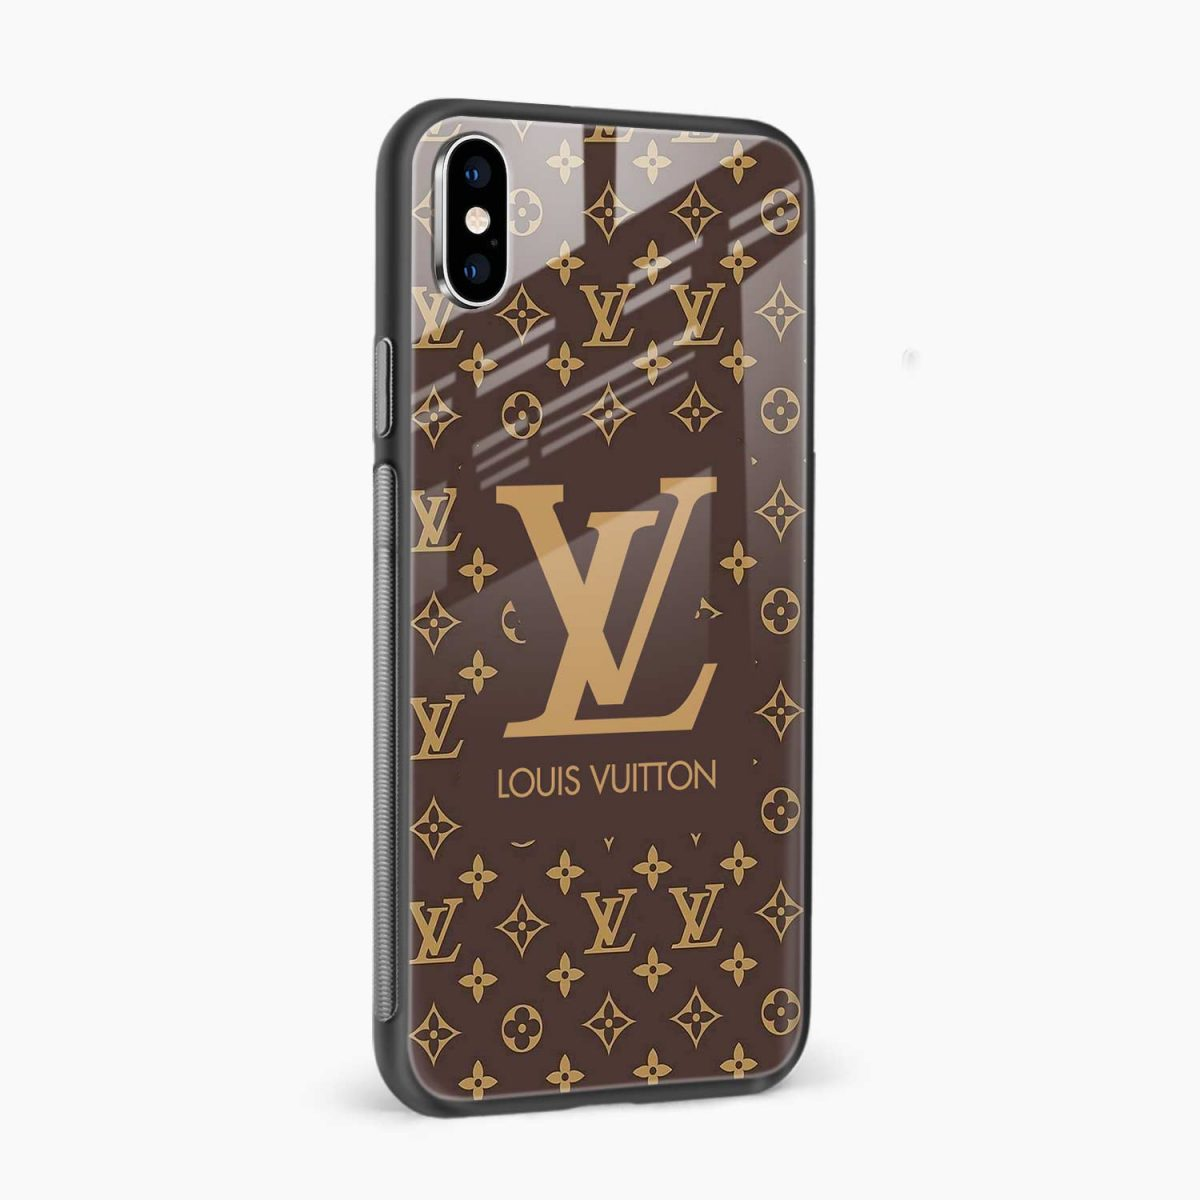 louis vuitton side view apple iphone x xs max back cover